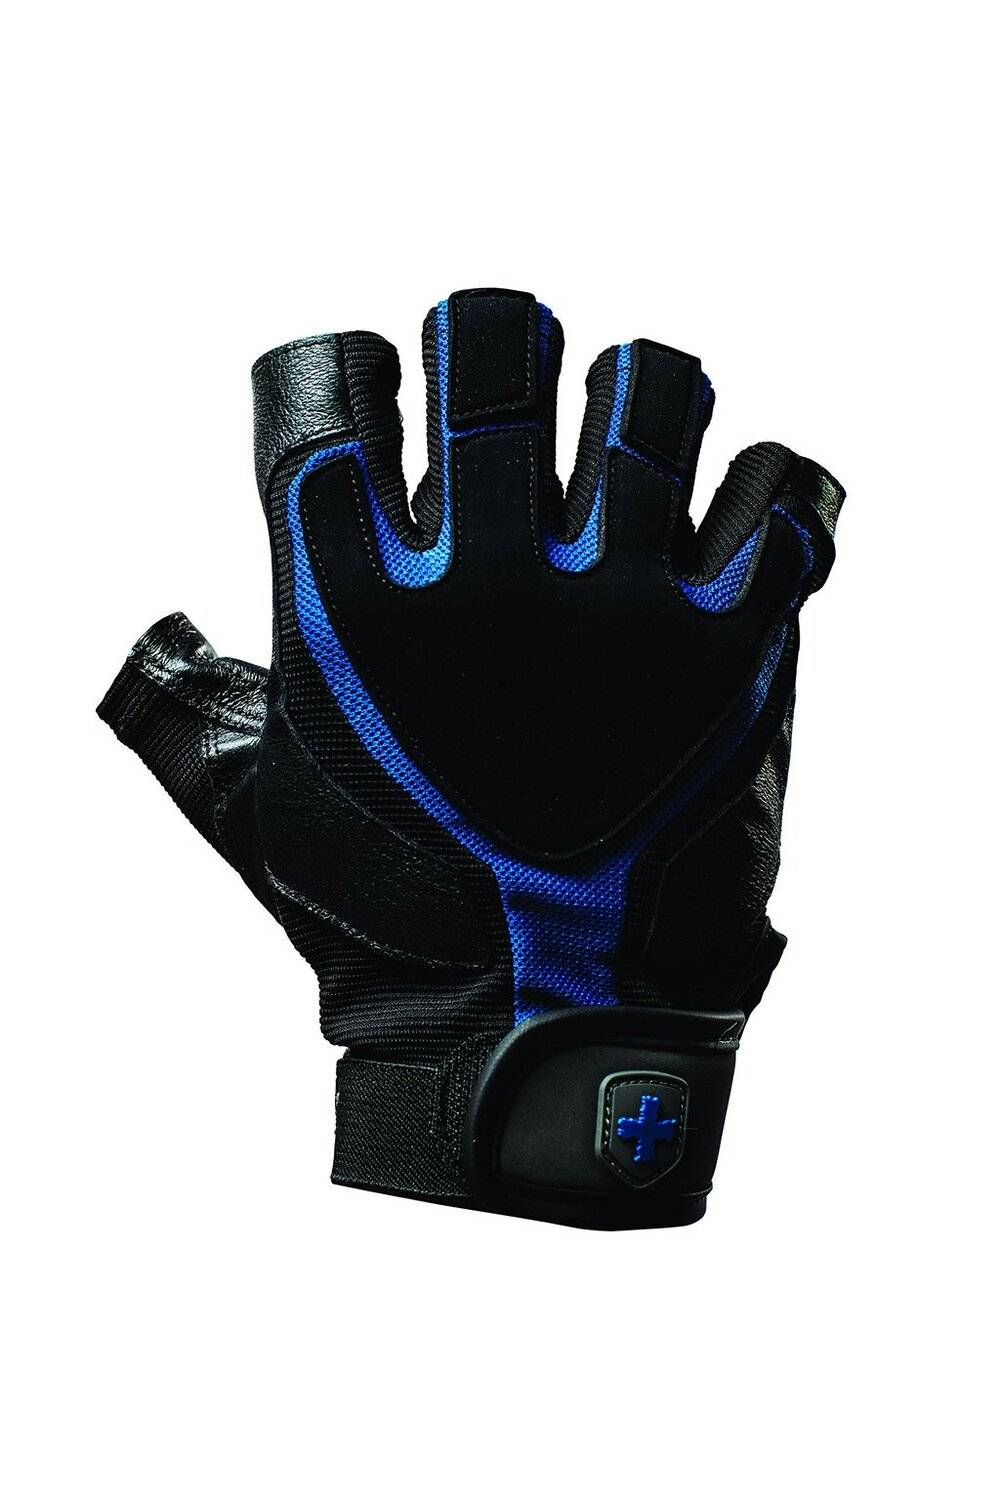 Harbinger Training Grip Tech Gel-Padded Leather Palm Weightlifting Gloves, Pair, Small